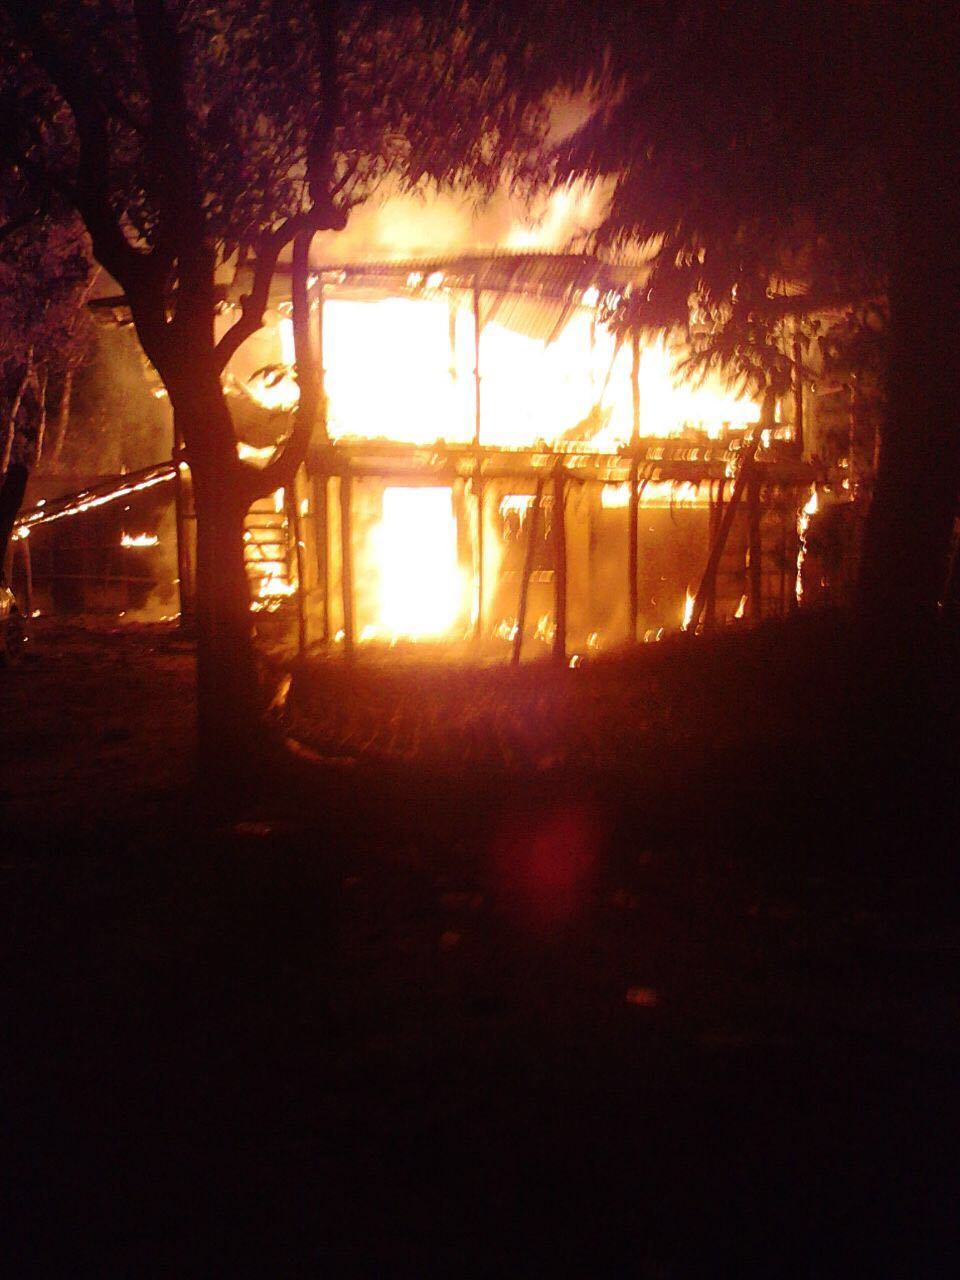 A Rohingya home burns during riots in the Arakan State of Burma.  *Cellphone images from surviving Rohingya refugees.  (not an image of Hasan's home)